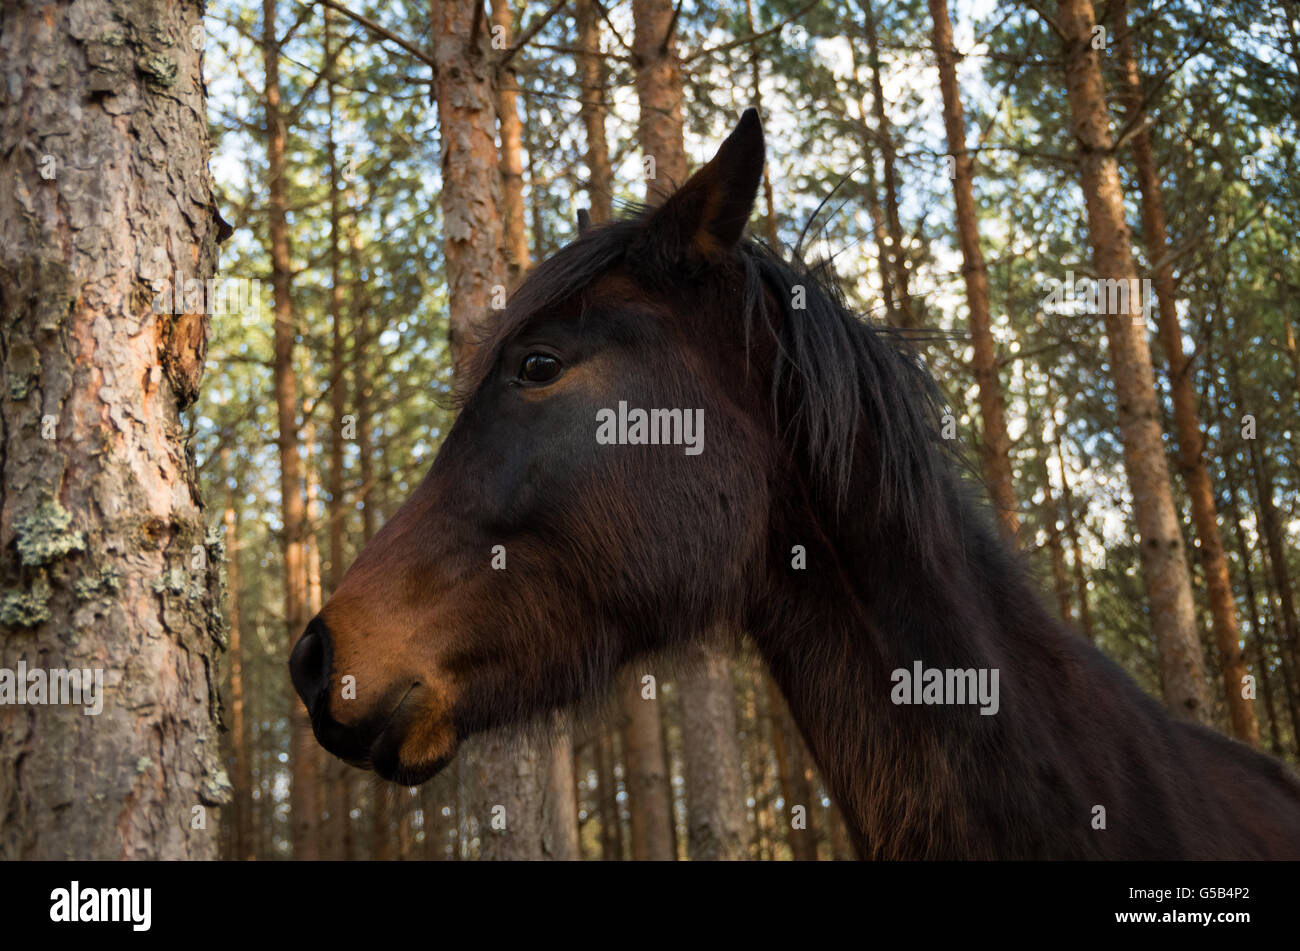 Young horse in a pine forest looking anxious, from a low perspective - Stock Image